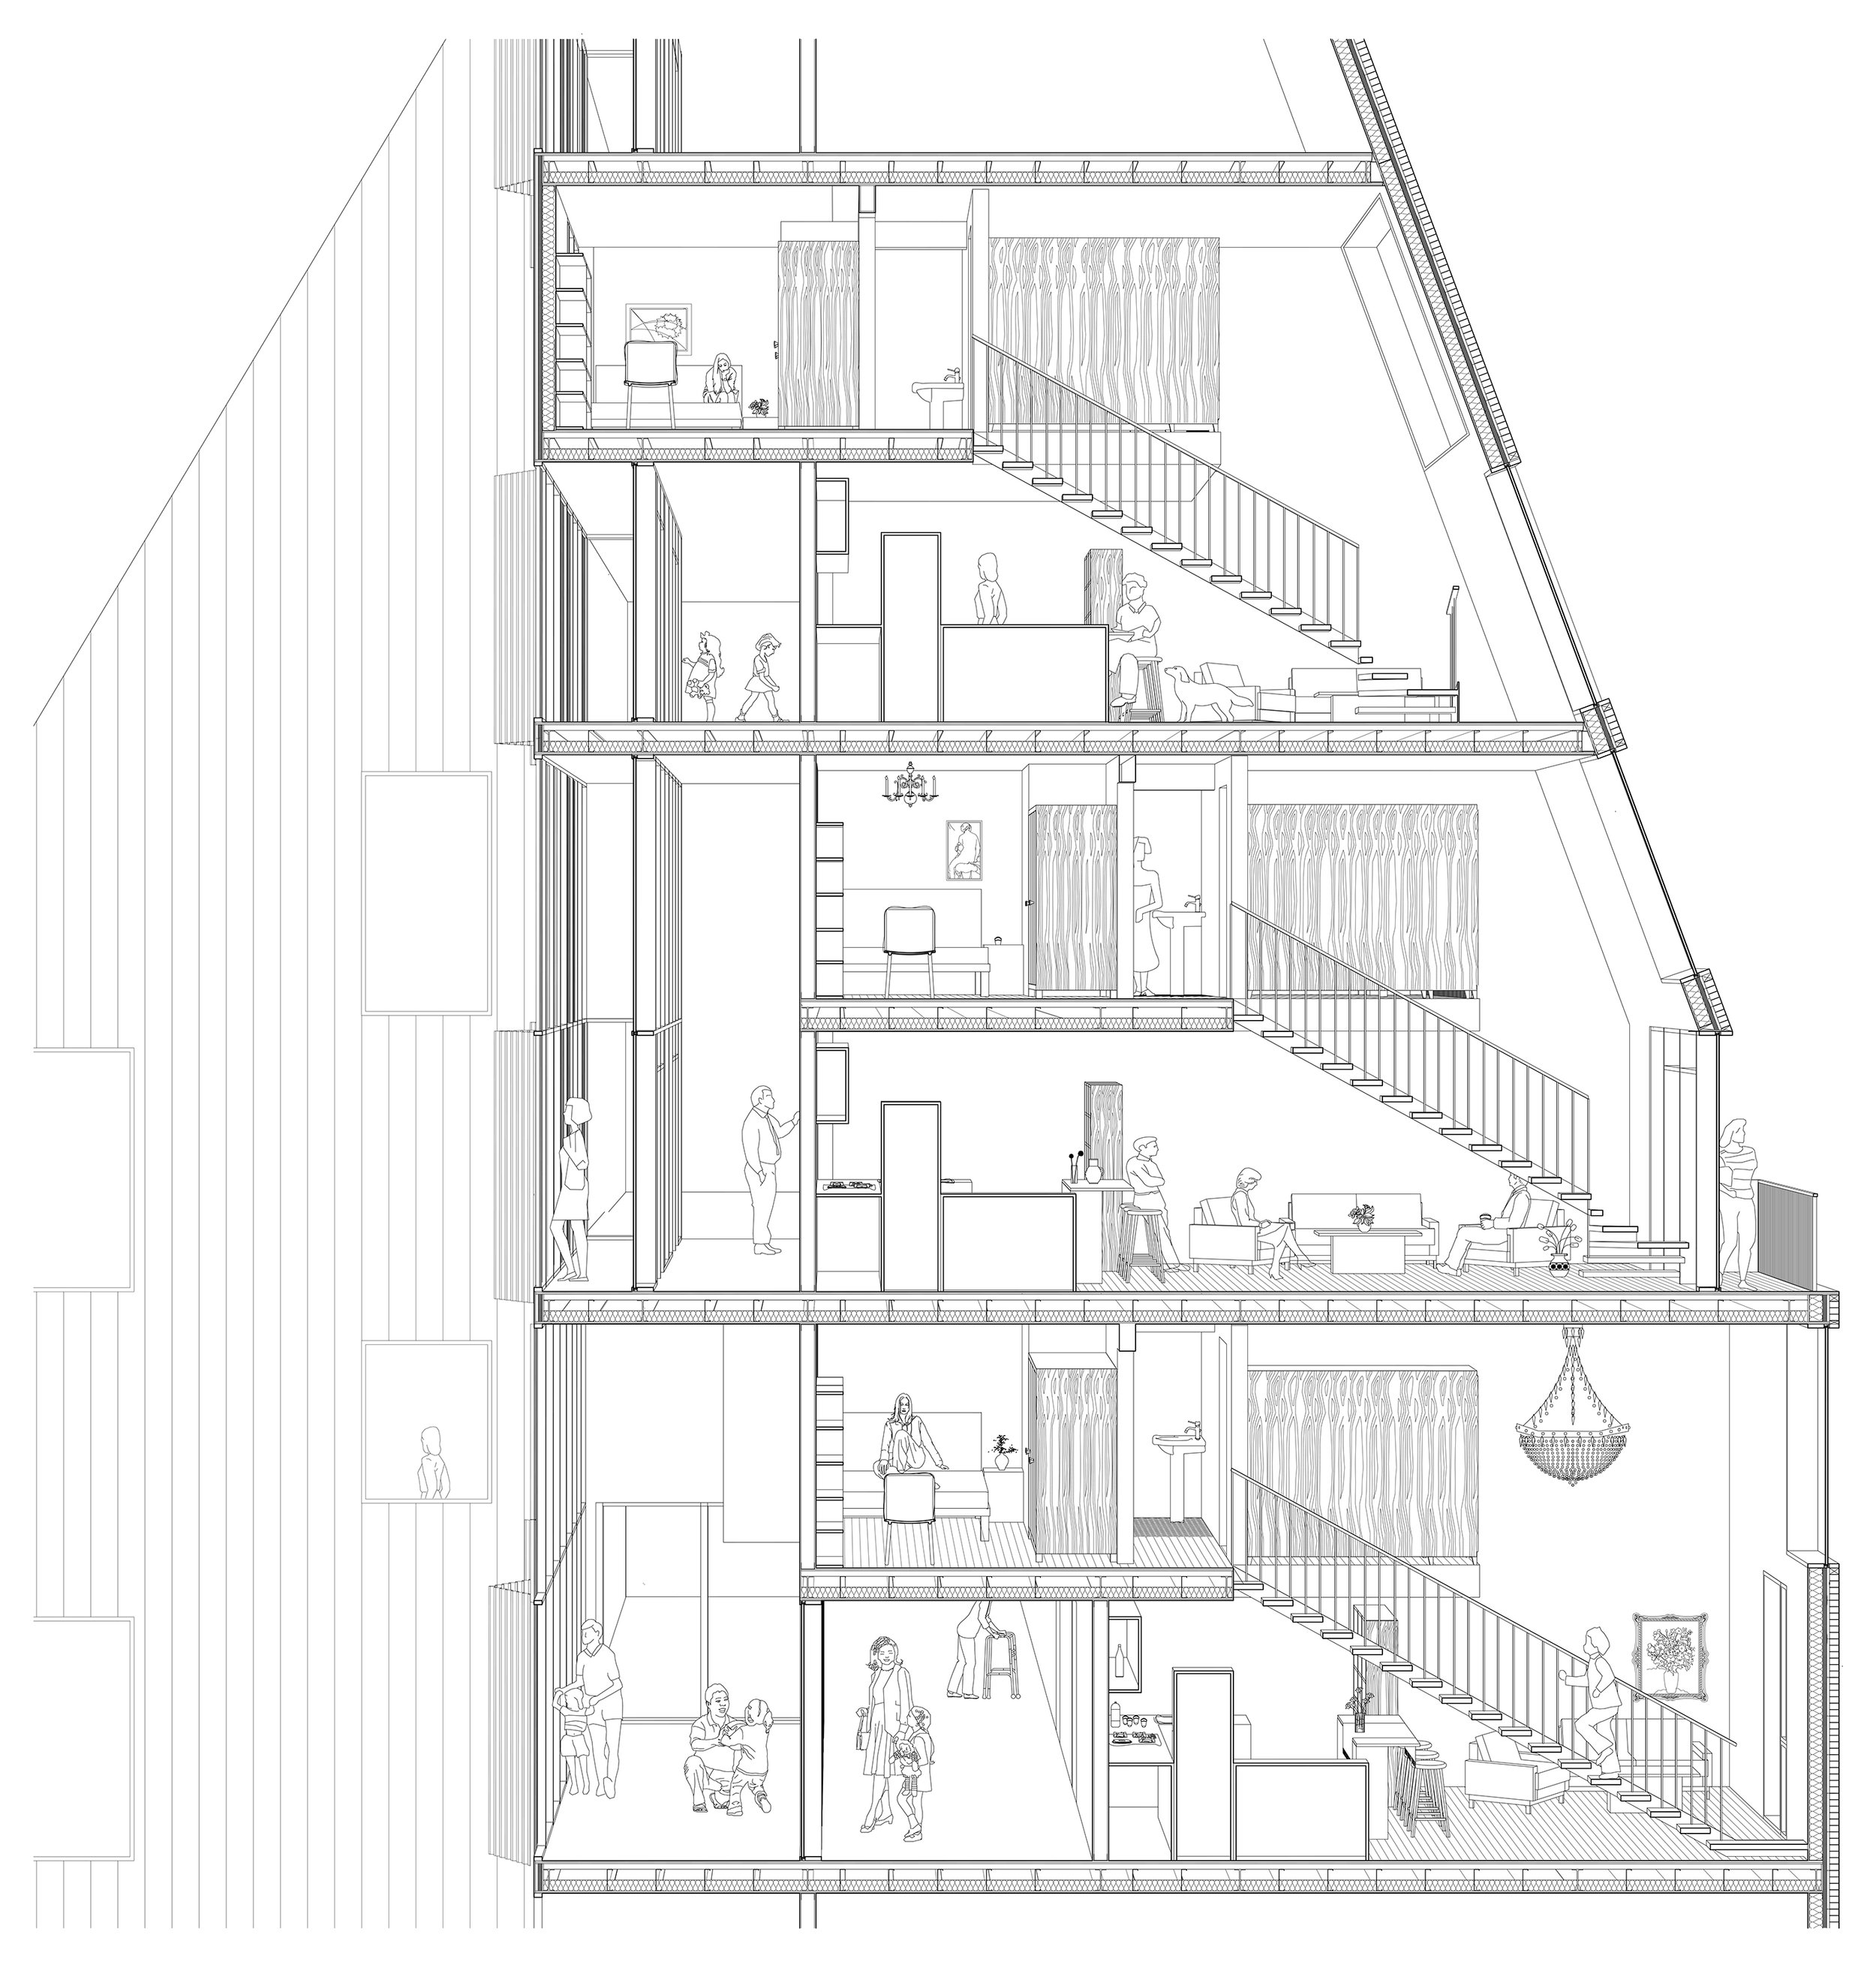 This is a sectional perspective indicating the spatial organization of the housing unit with the sloped roof and a depiction of the possible everyday life in this design proposal.